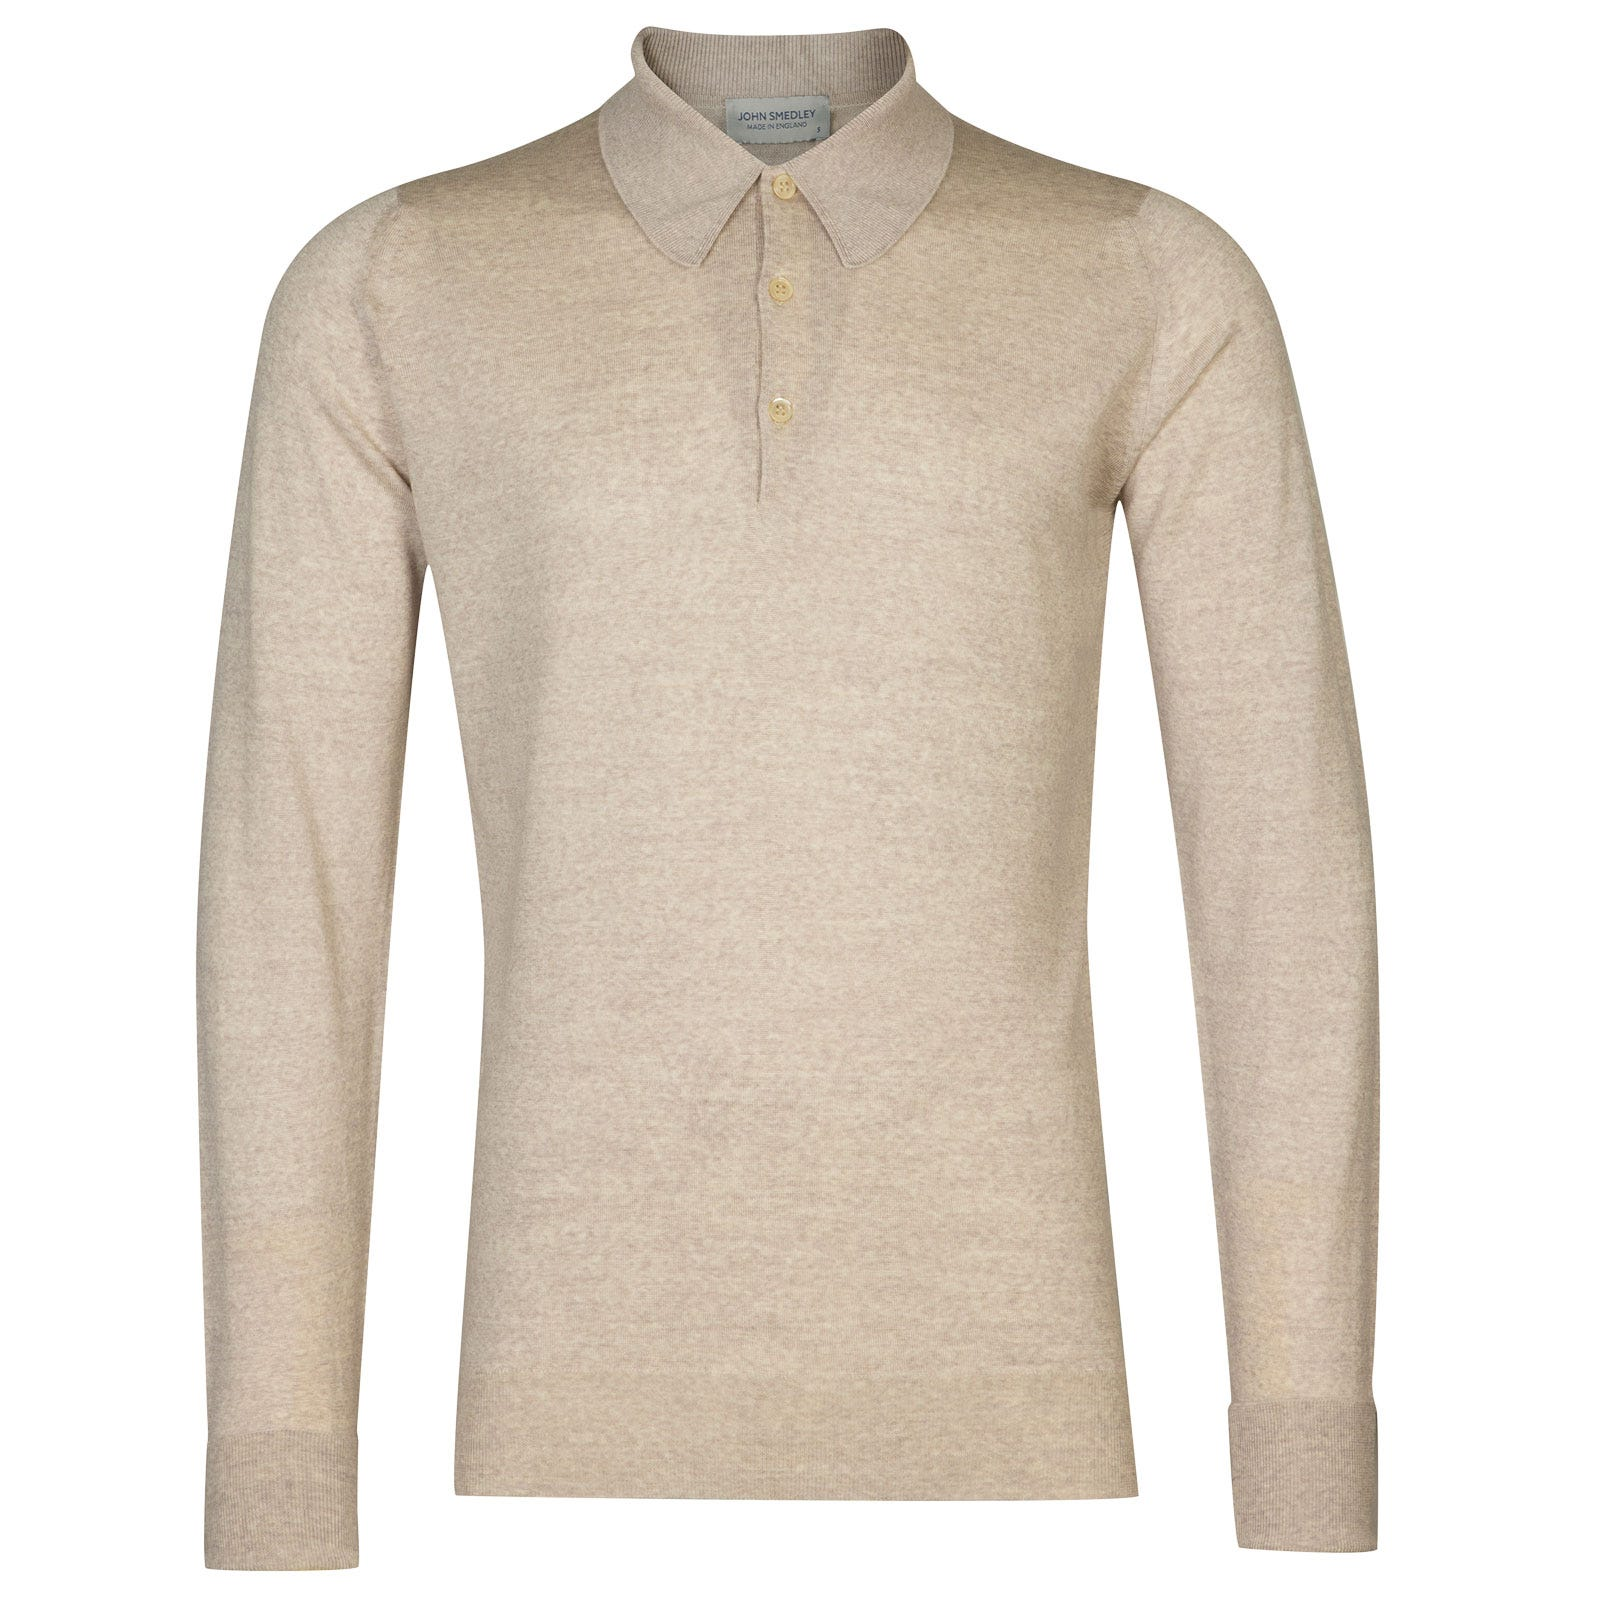 Dorset In Eastwood Beige-XS